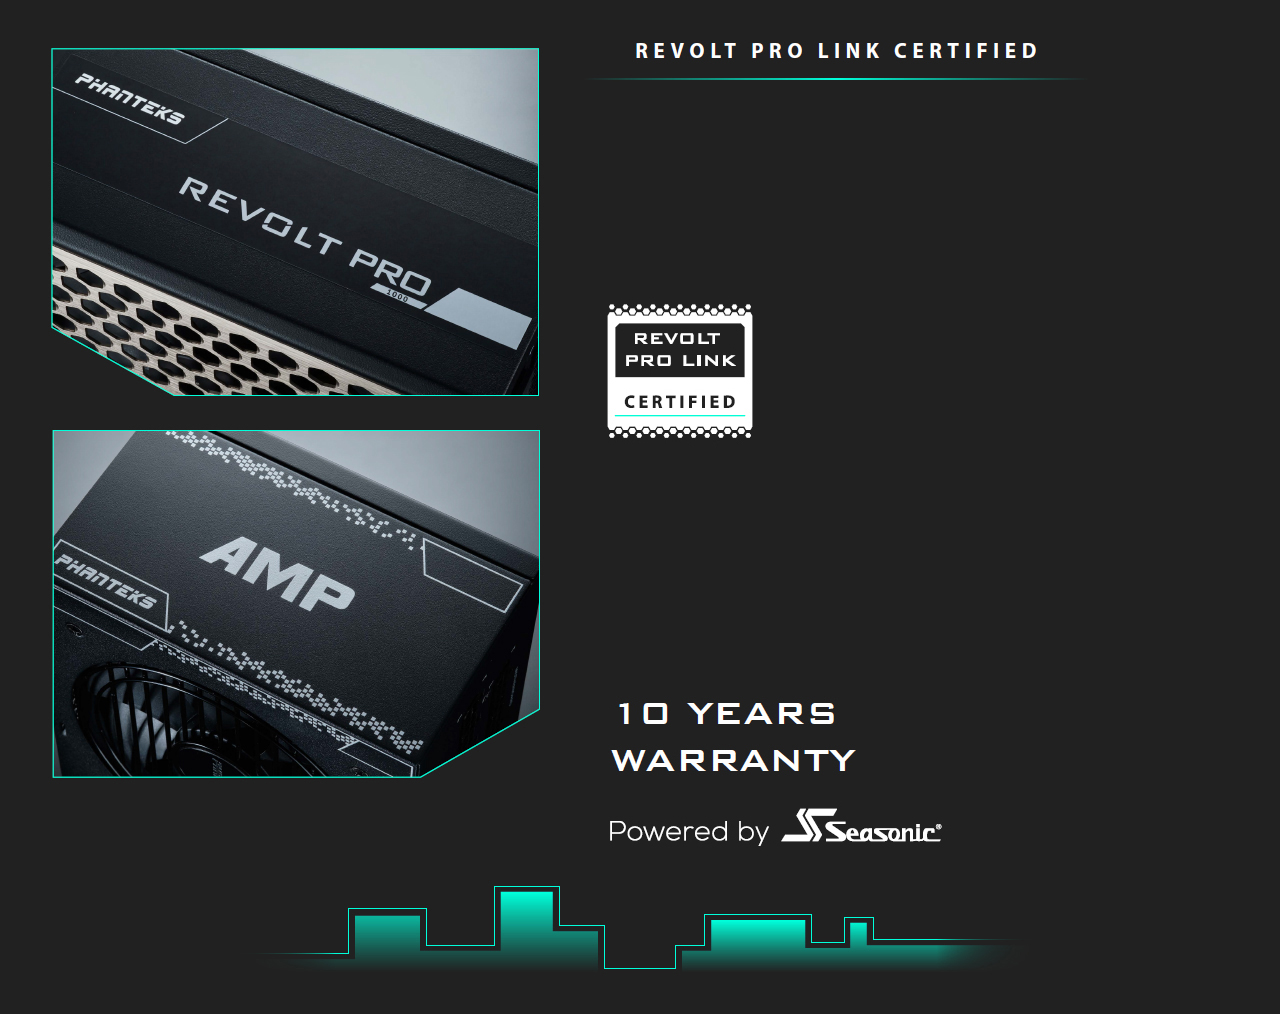 Phanteks AMP Series ATX Power Supply revolt pro link certified